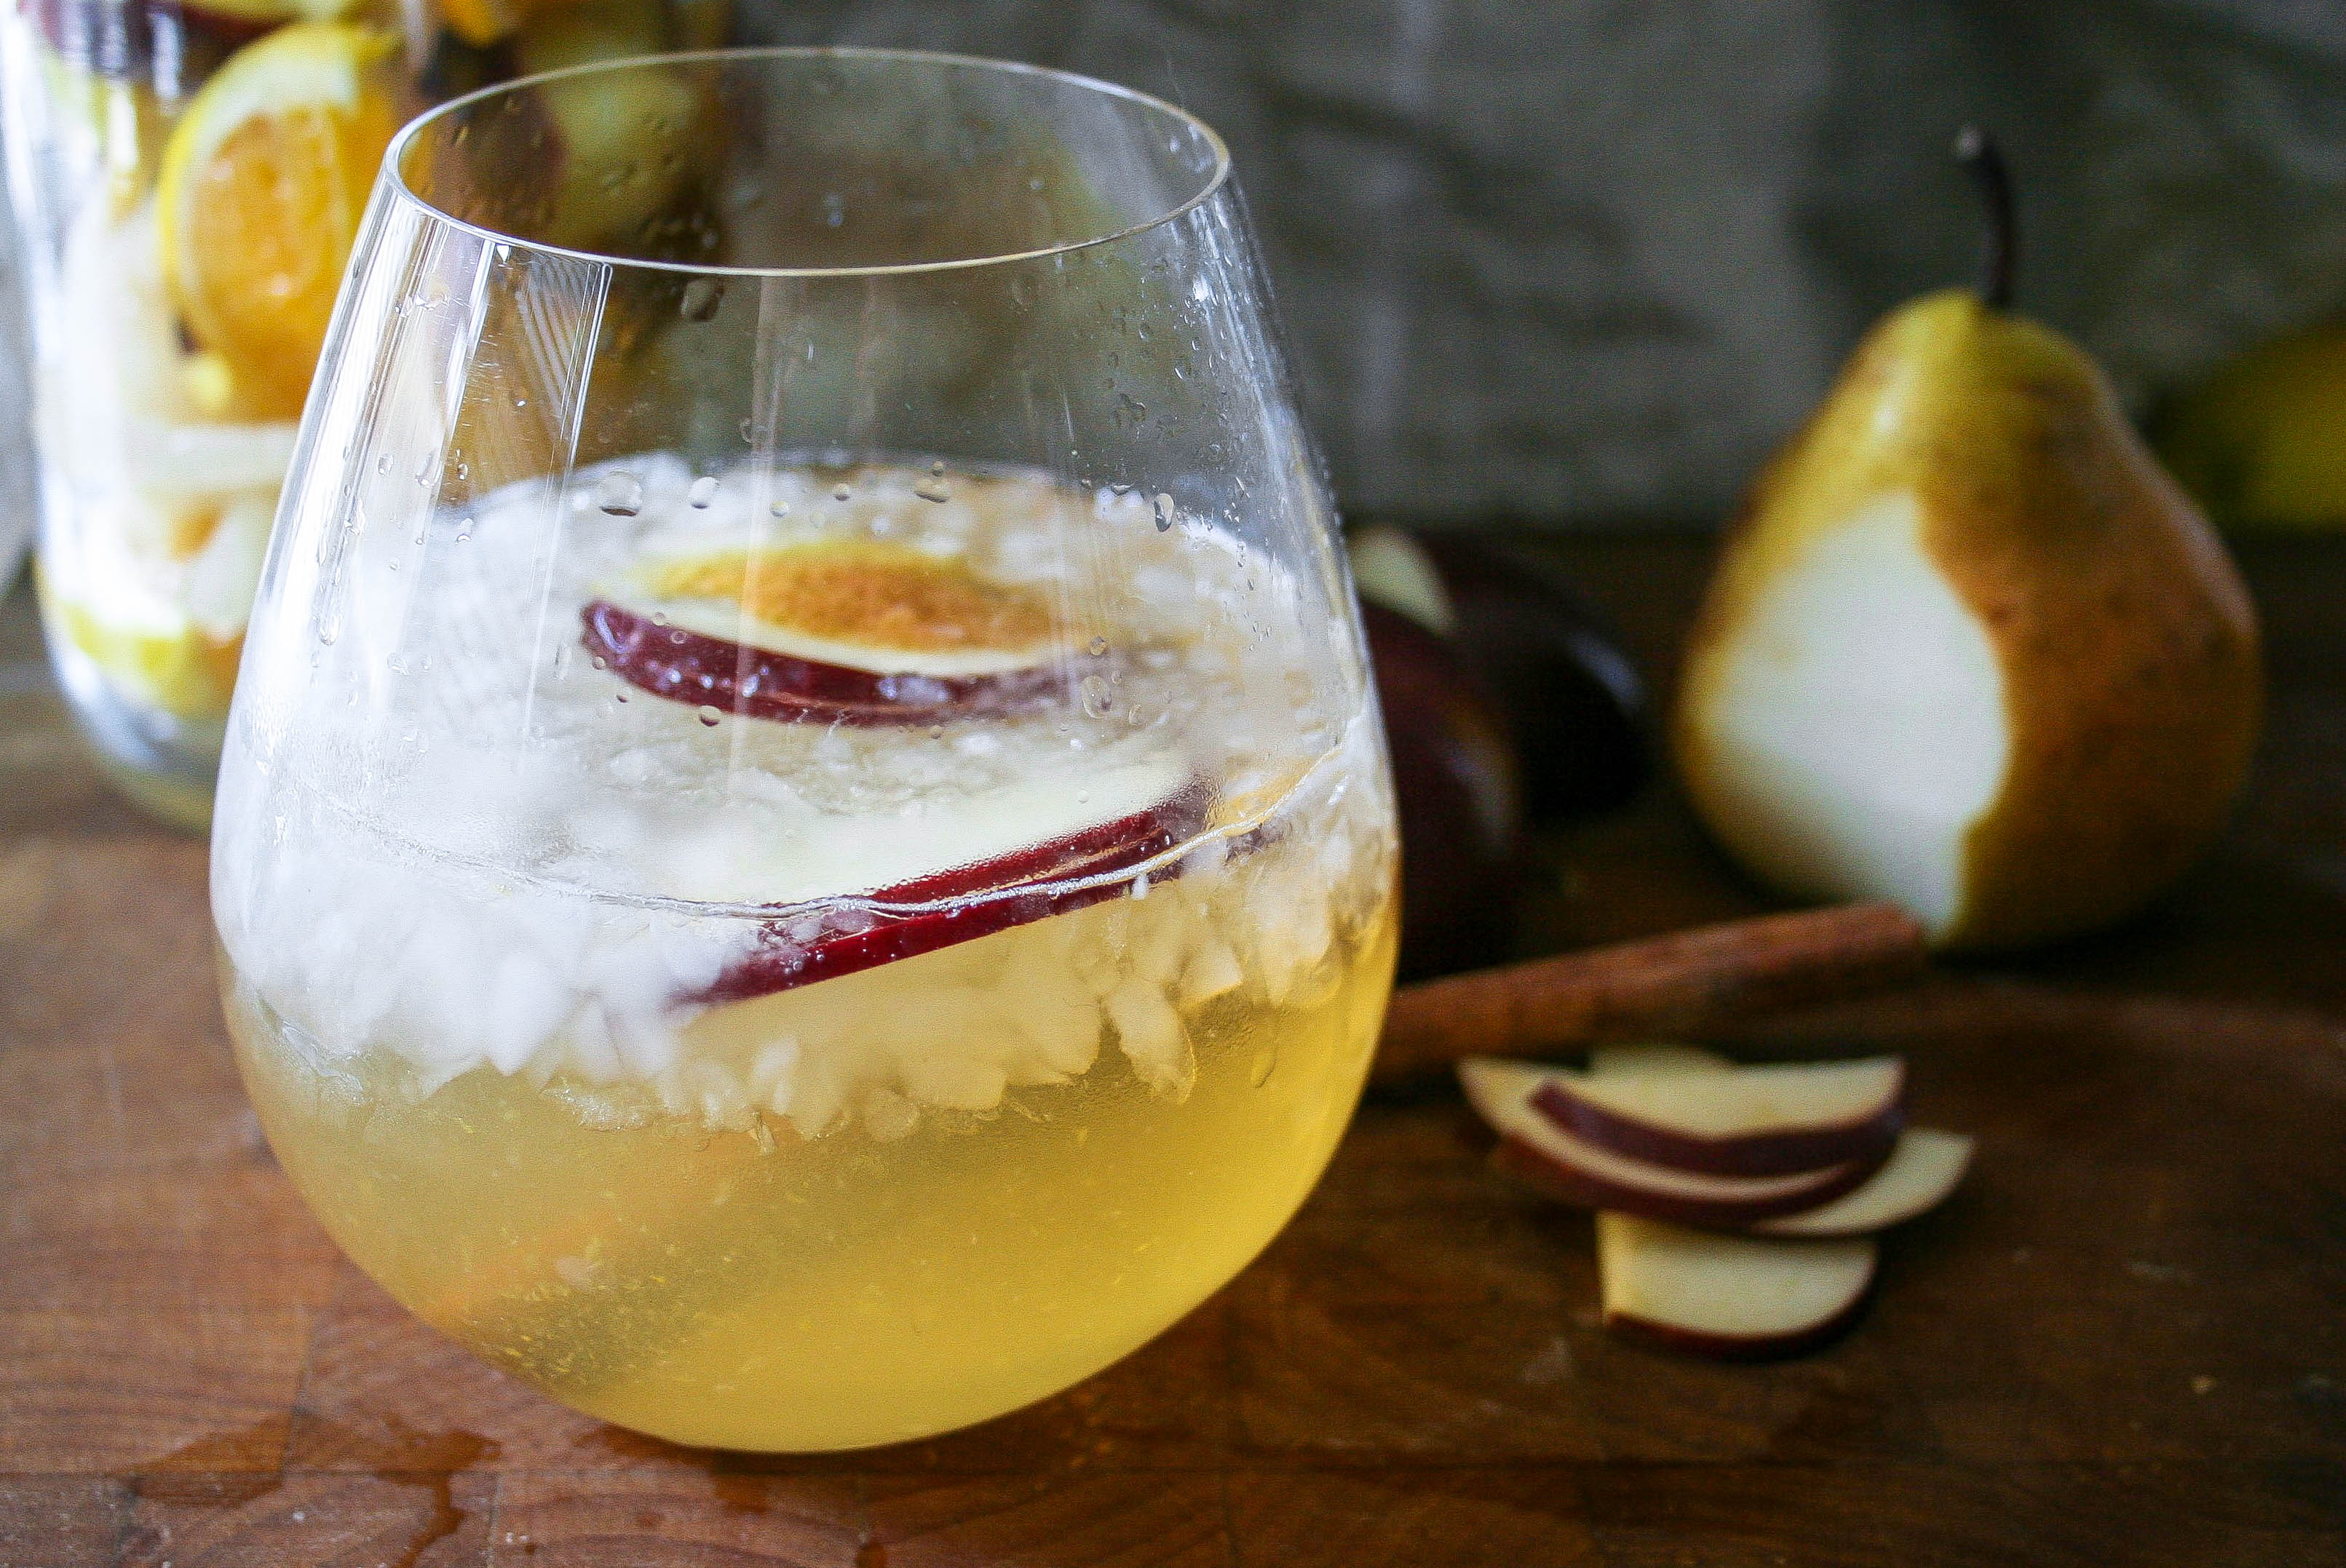 pears, apples, cinnamon, oranges, and honey combine with white wine to create a fruity fall sangria with a hint of warm spice. cheers! | fall sangria | a flavor journal food blog